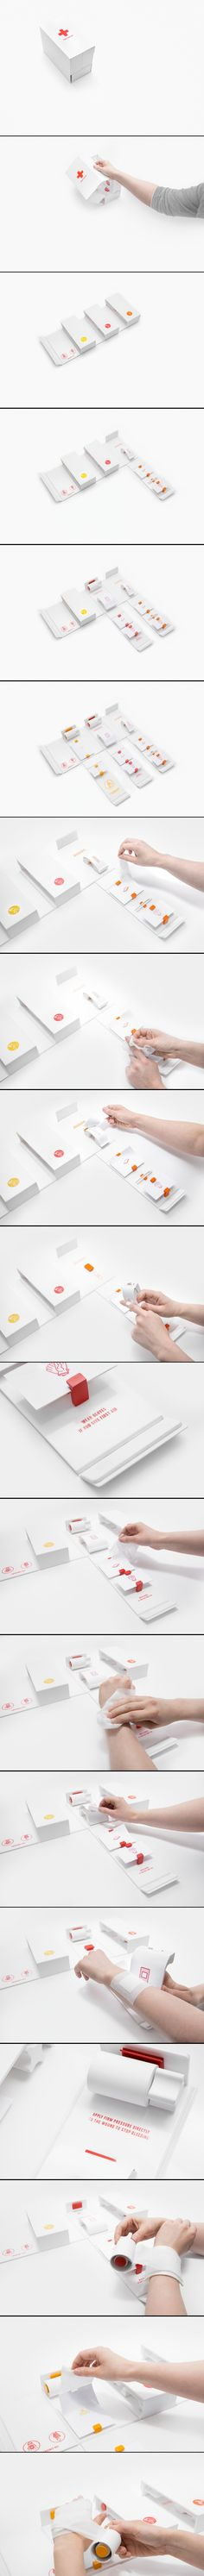 DIY FIRST AID Kit #packaging by GABRIELE MELDAIKYTE for you @Anthony Vargas Vargas Vargasònia Calafat Capó PD